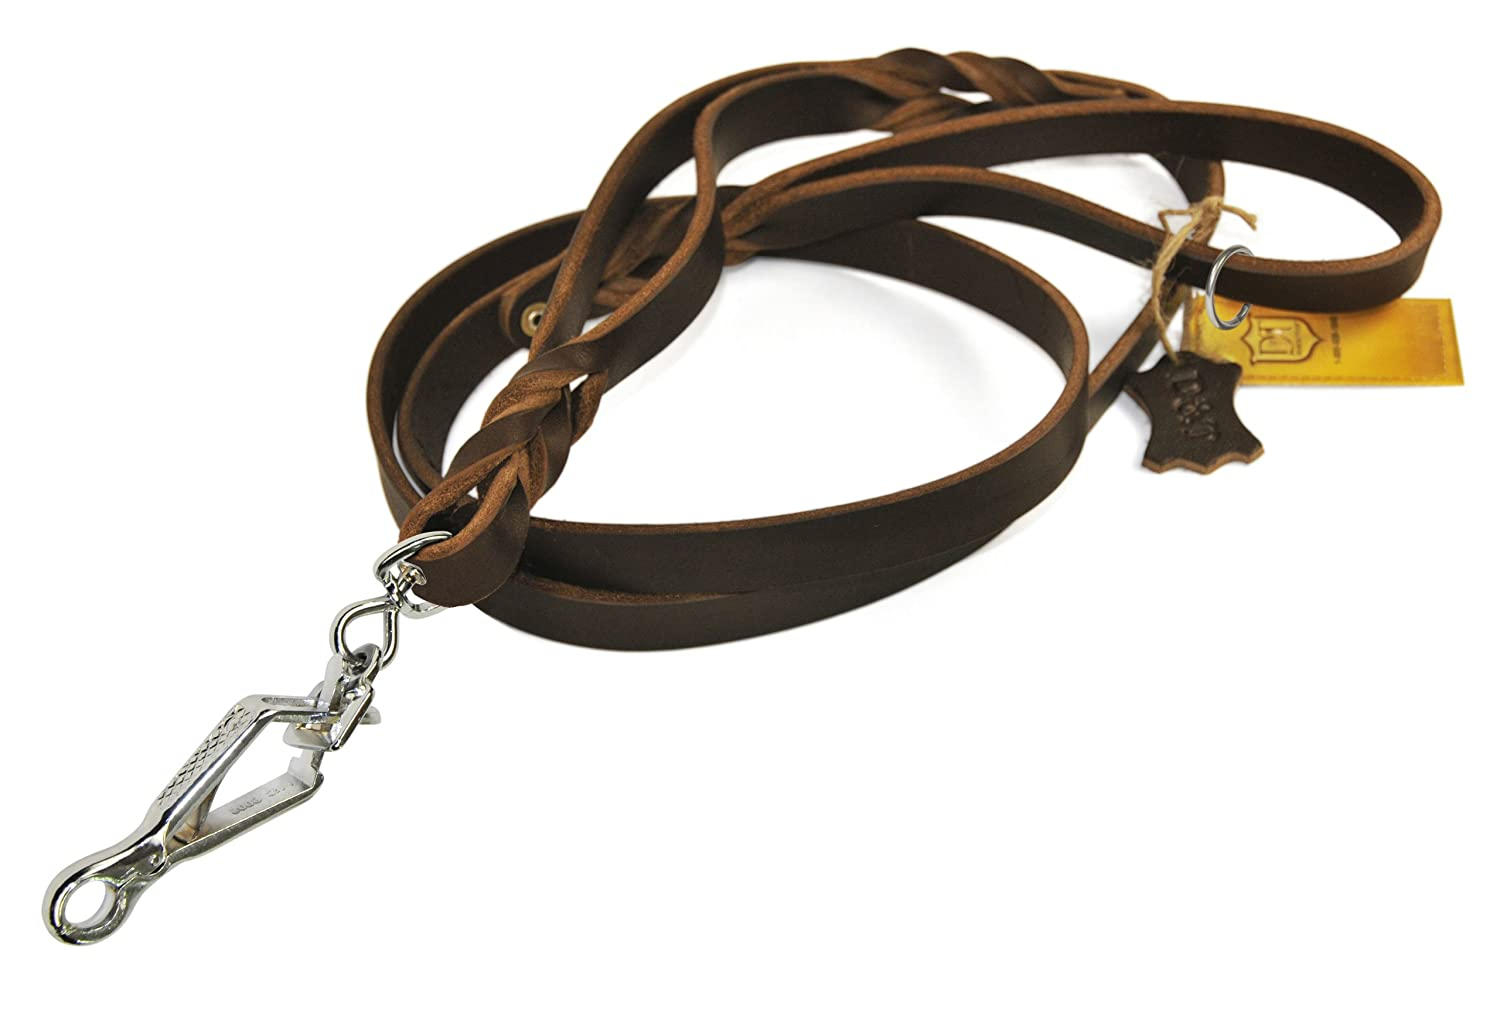 Dean & Tyler Brown Braidy Bunch Sprenger Snap Leash with Ring on Handle, 2-Feet by 3 4-Inch